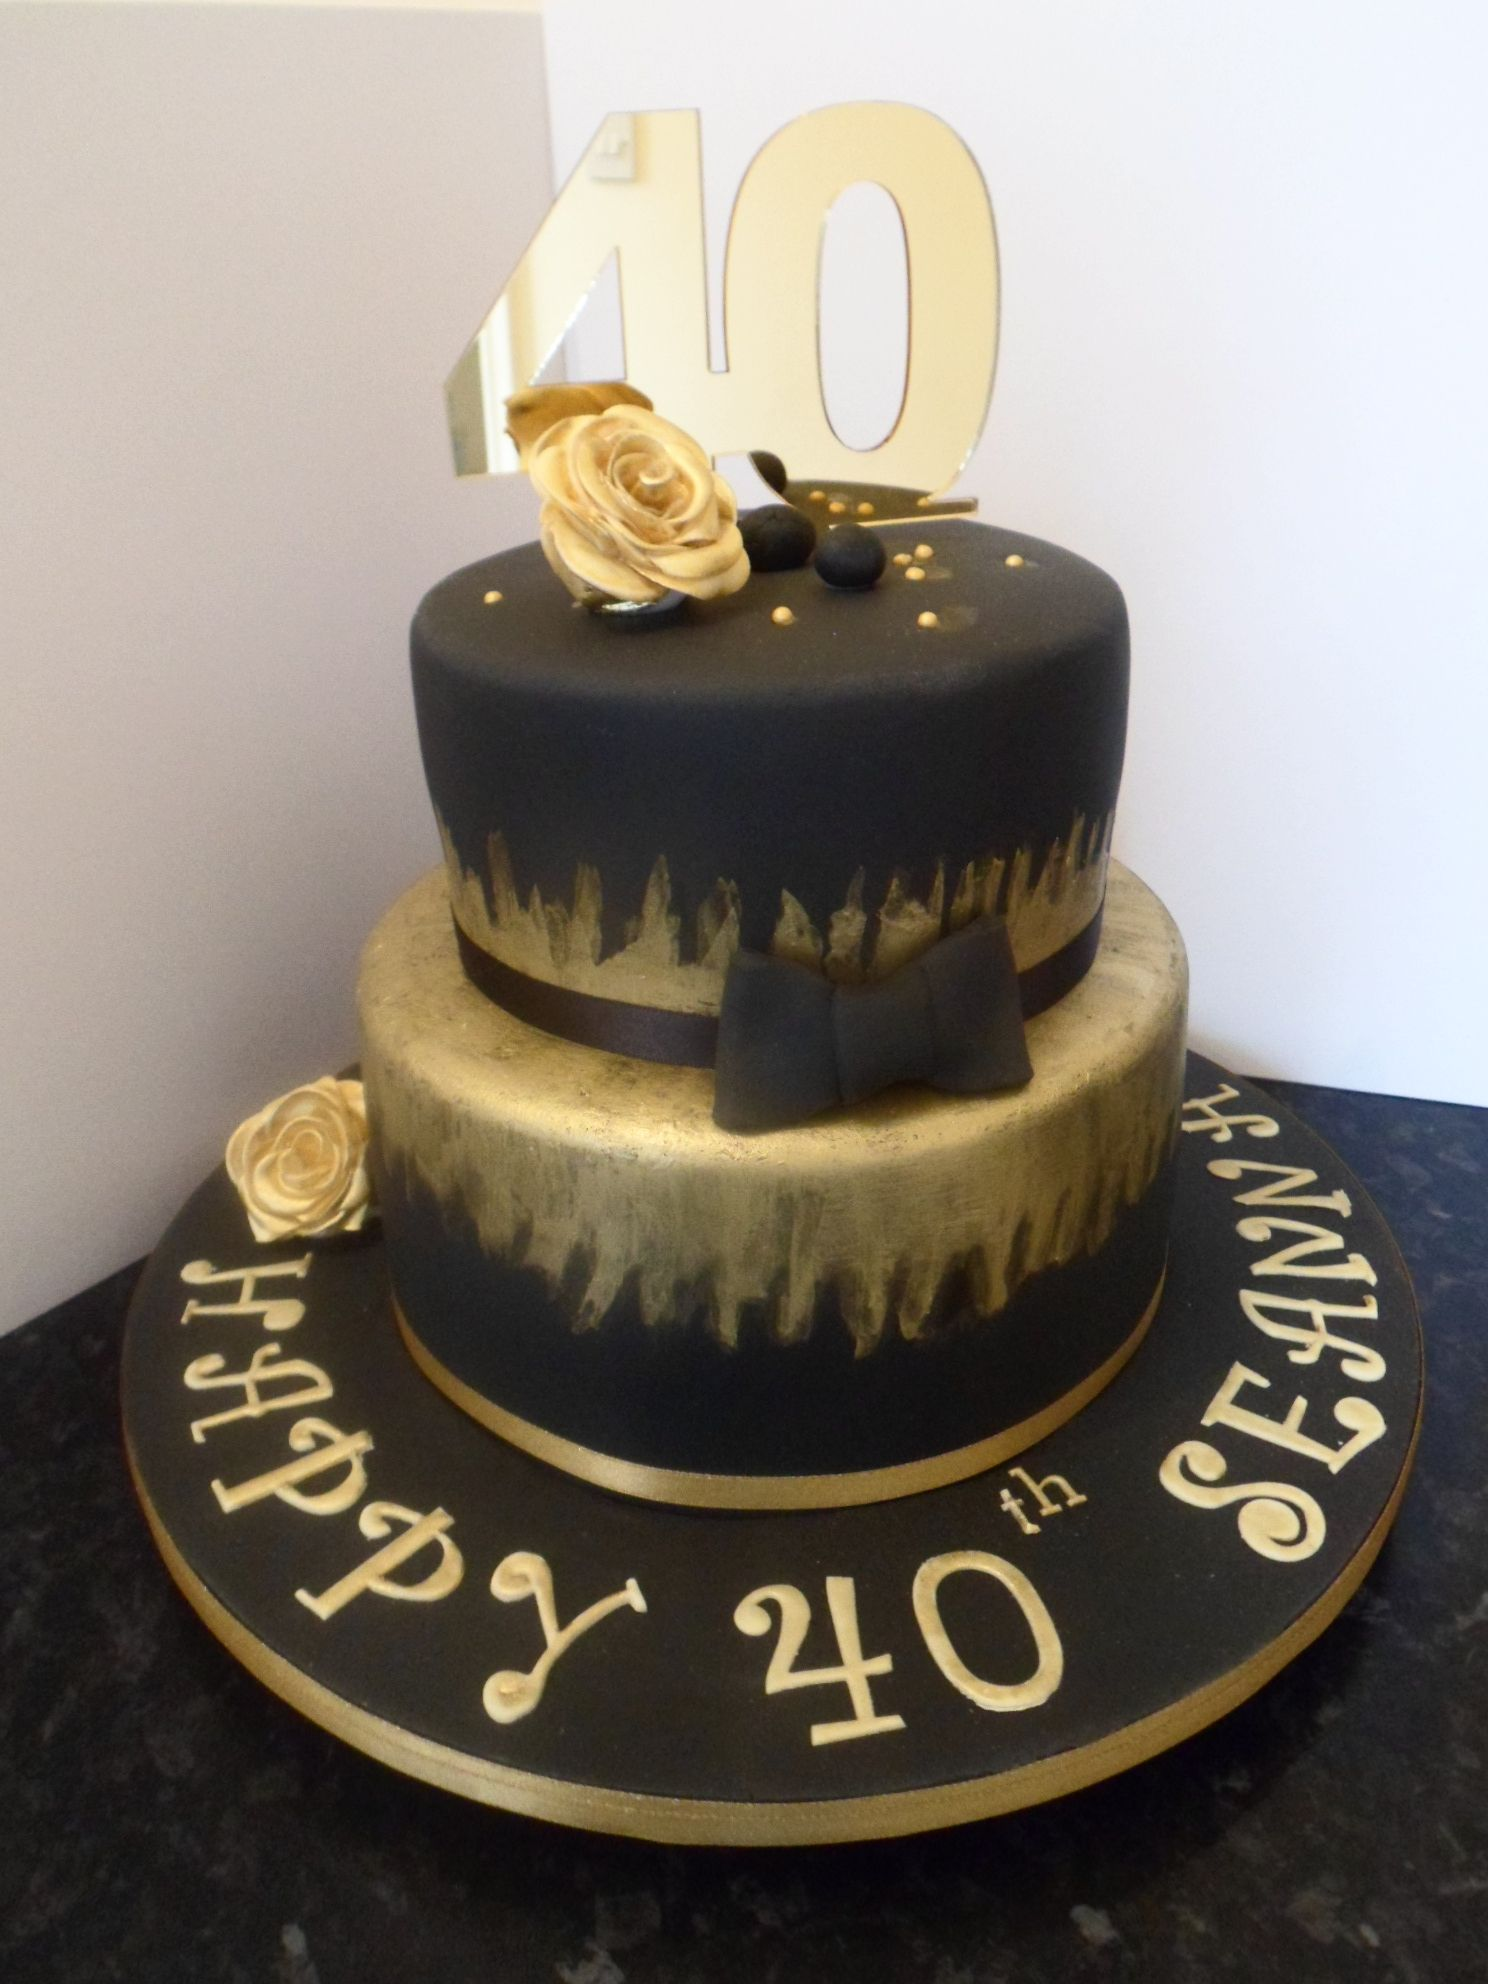 Fine Black And Gold Themed Cake Perfect For Other Birthday Celebrations Funny Birthday Cards Online Hendilapandamsfinfo